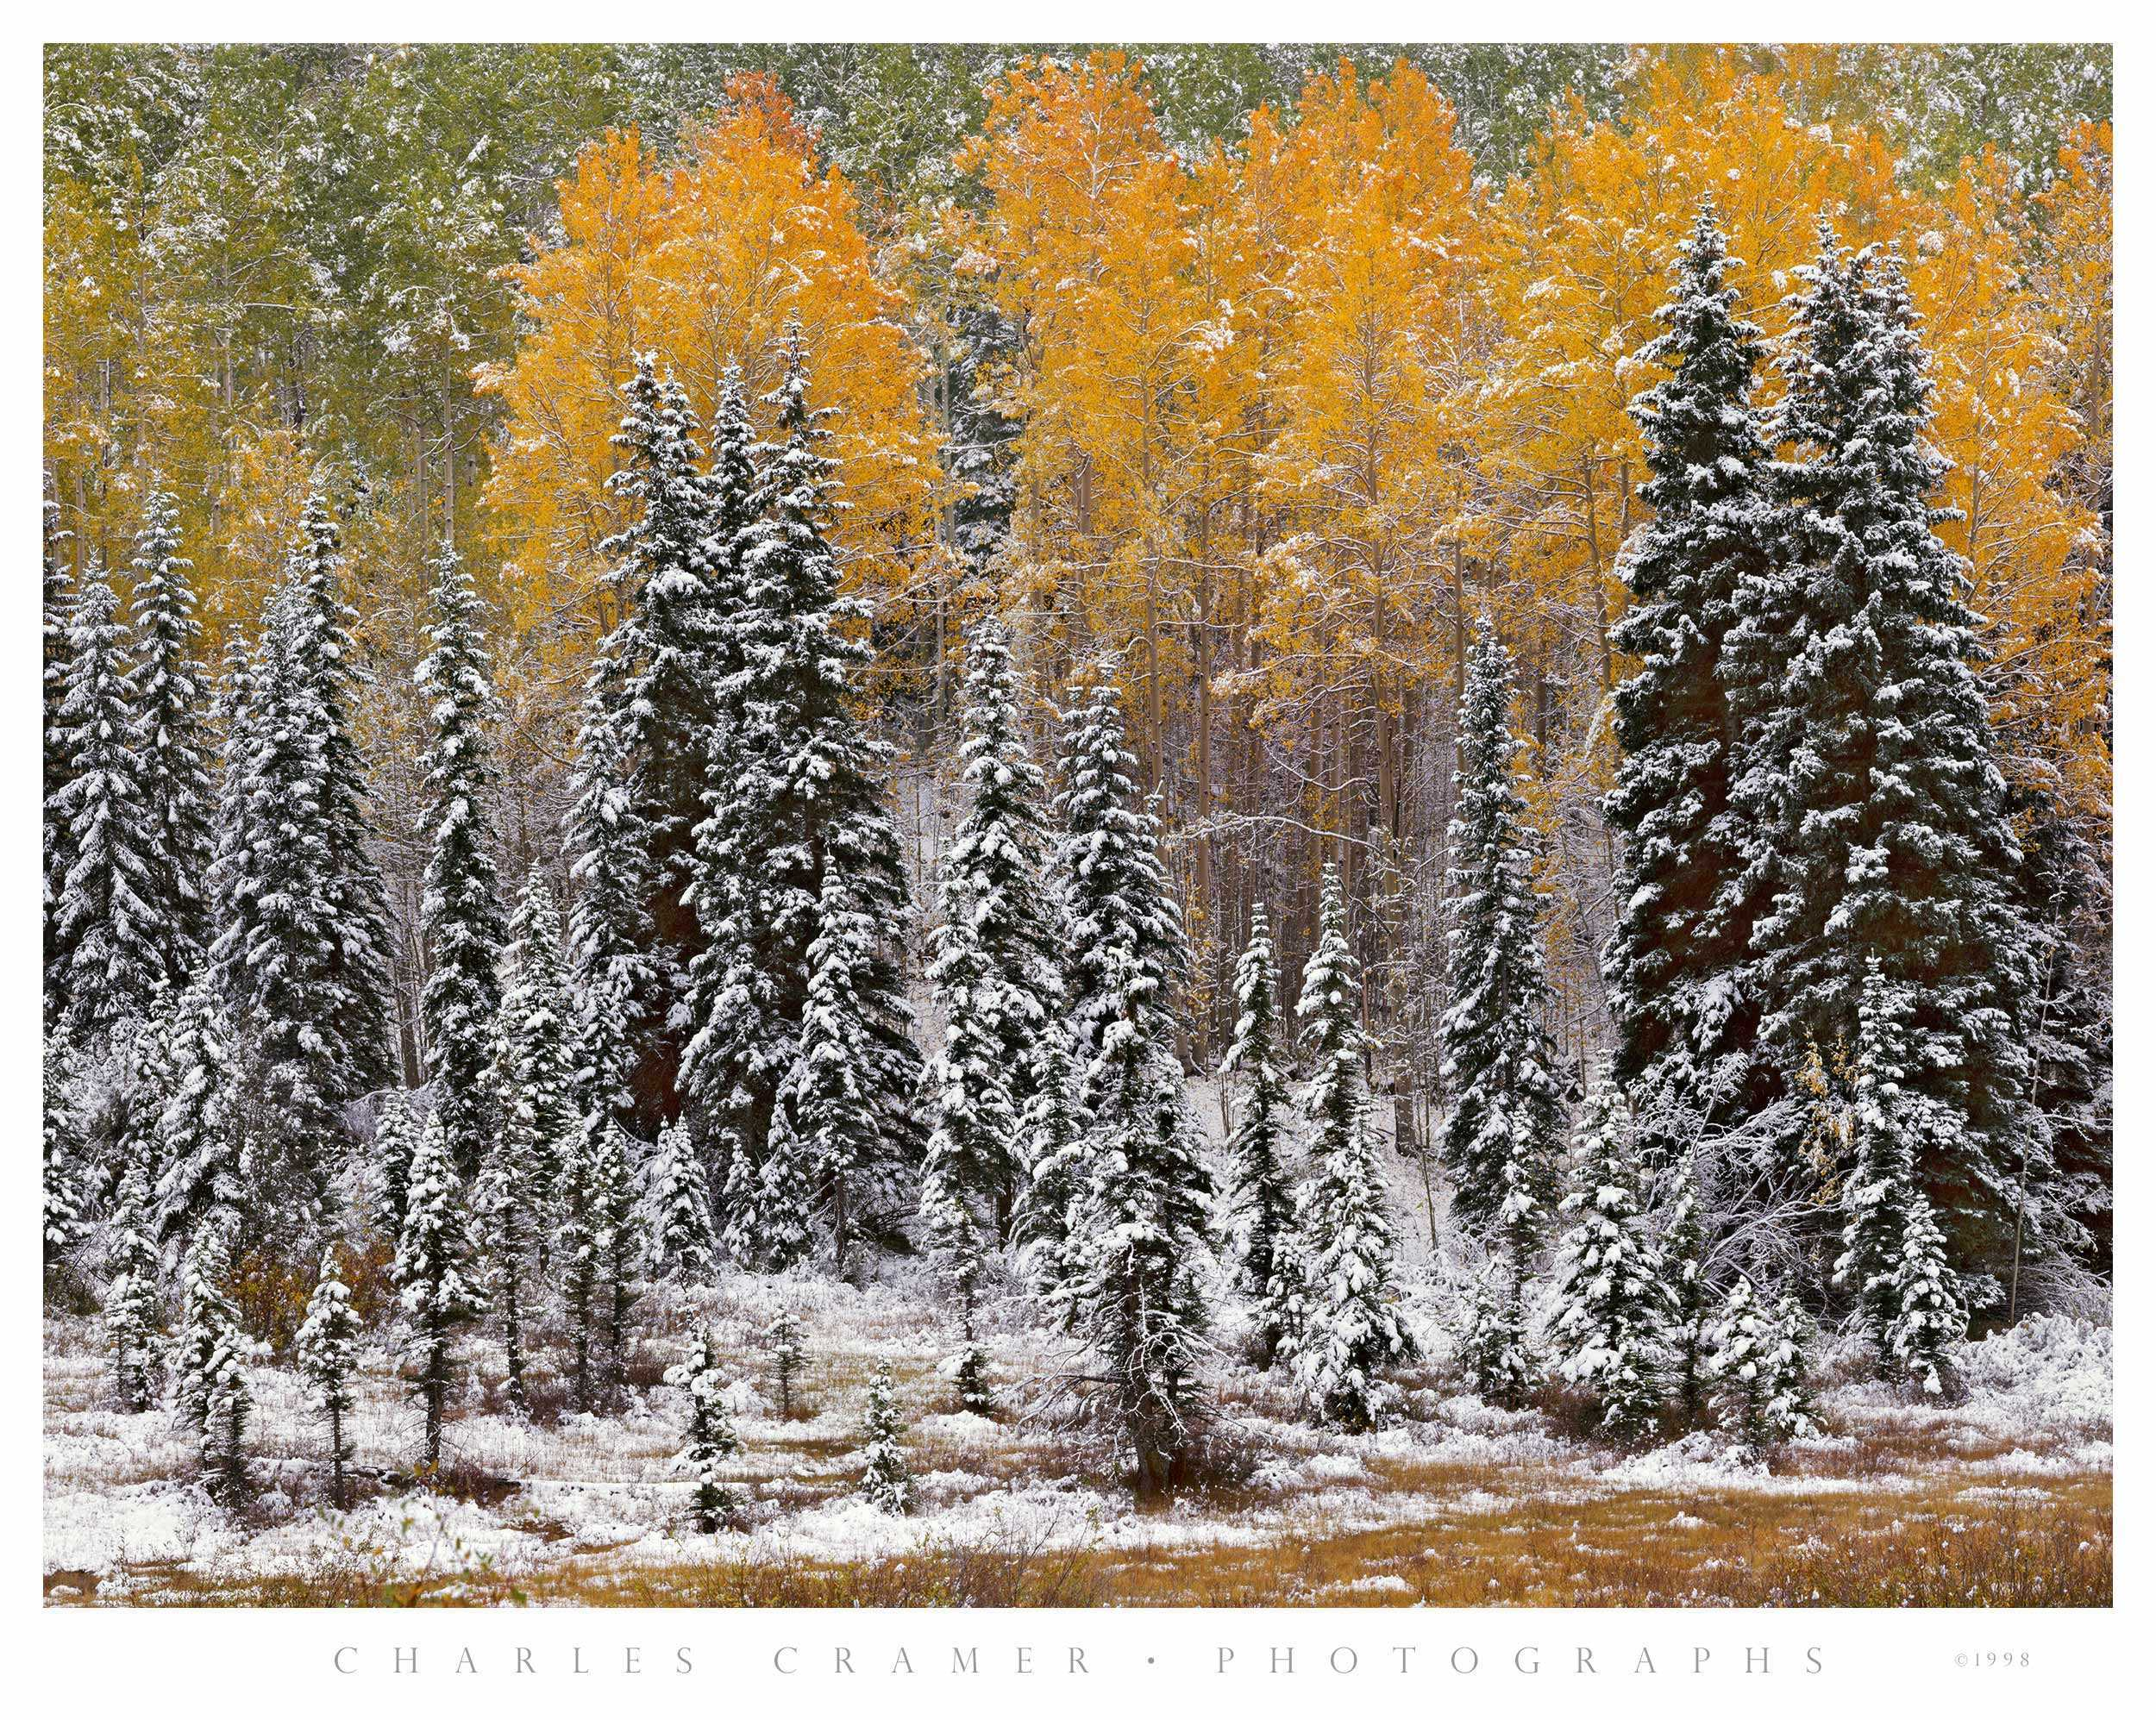 Autumn Snowfall, near Telluride, Colorado